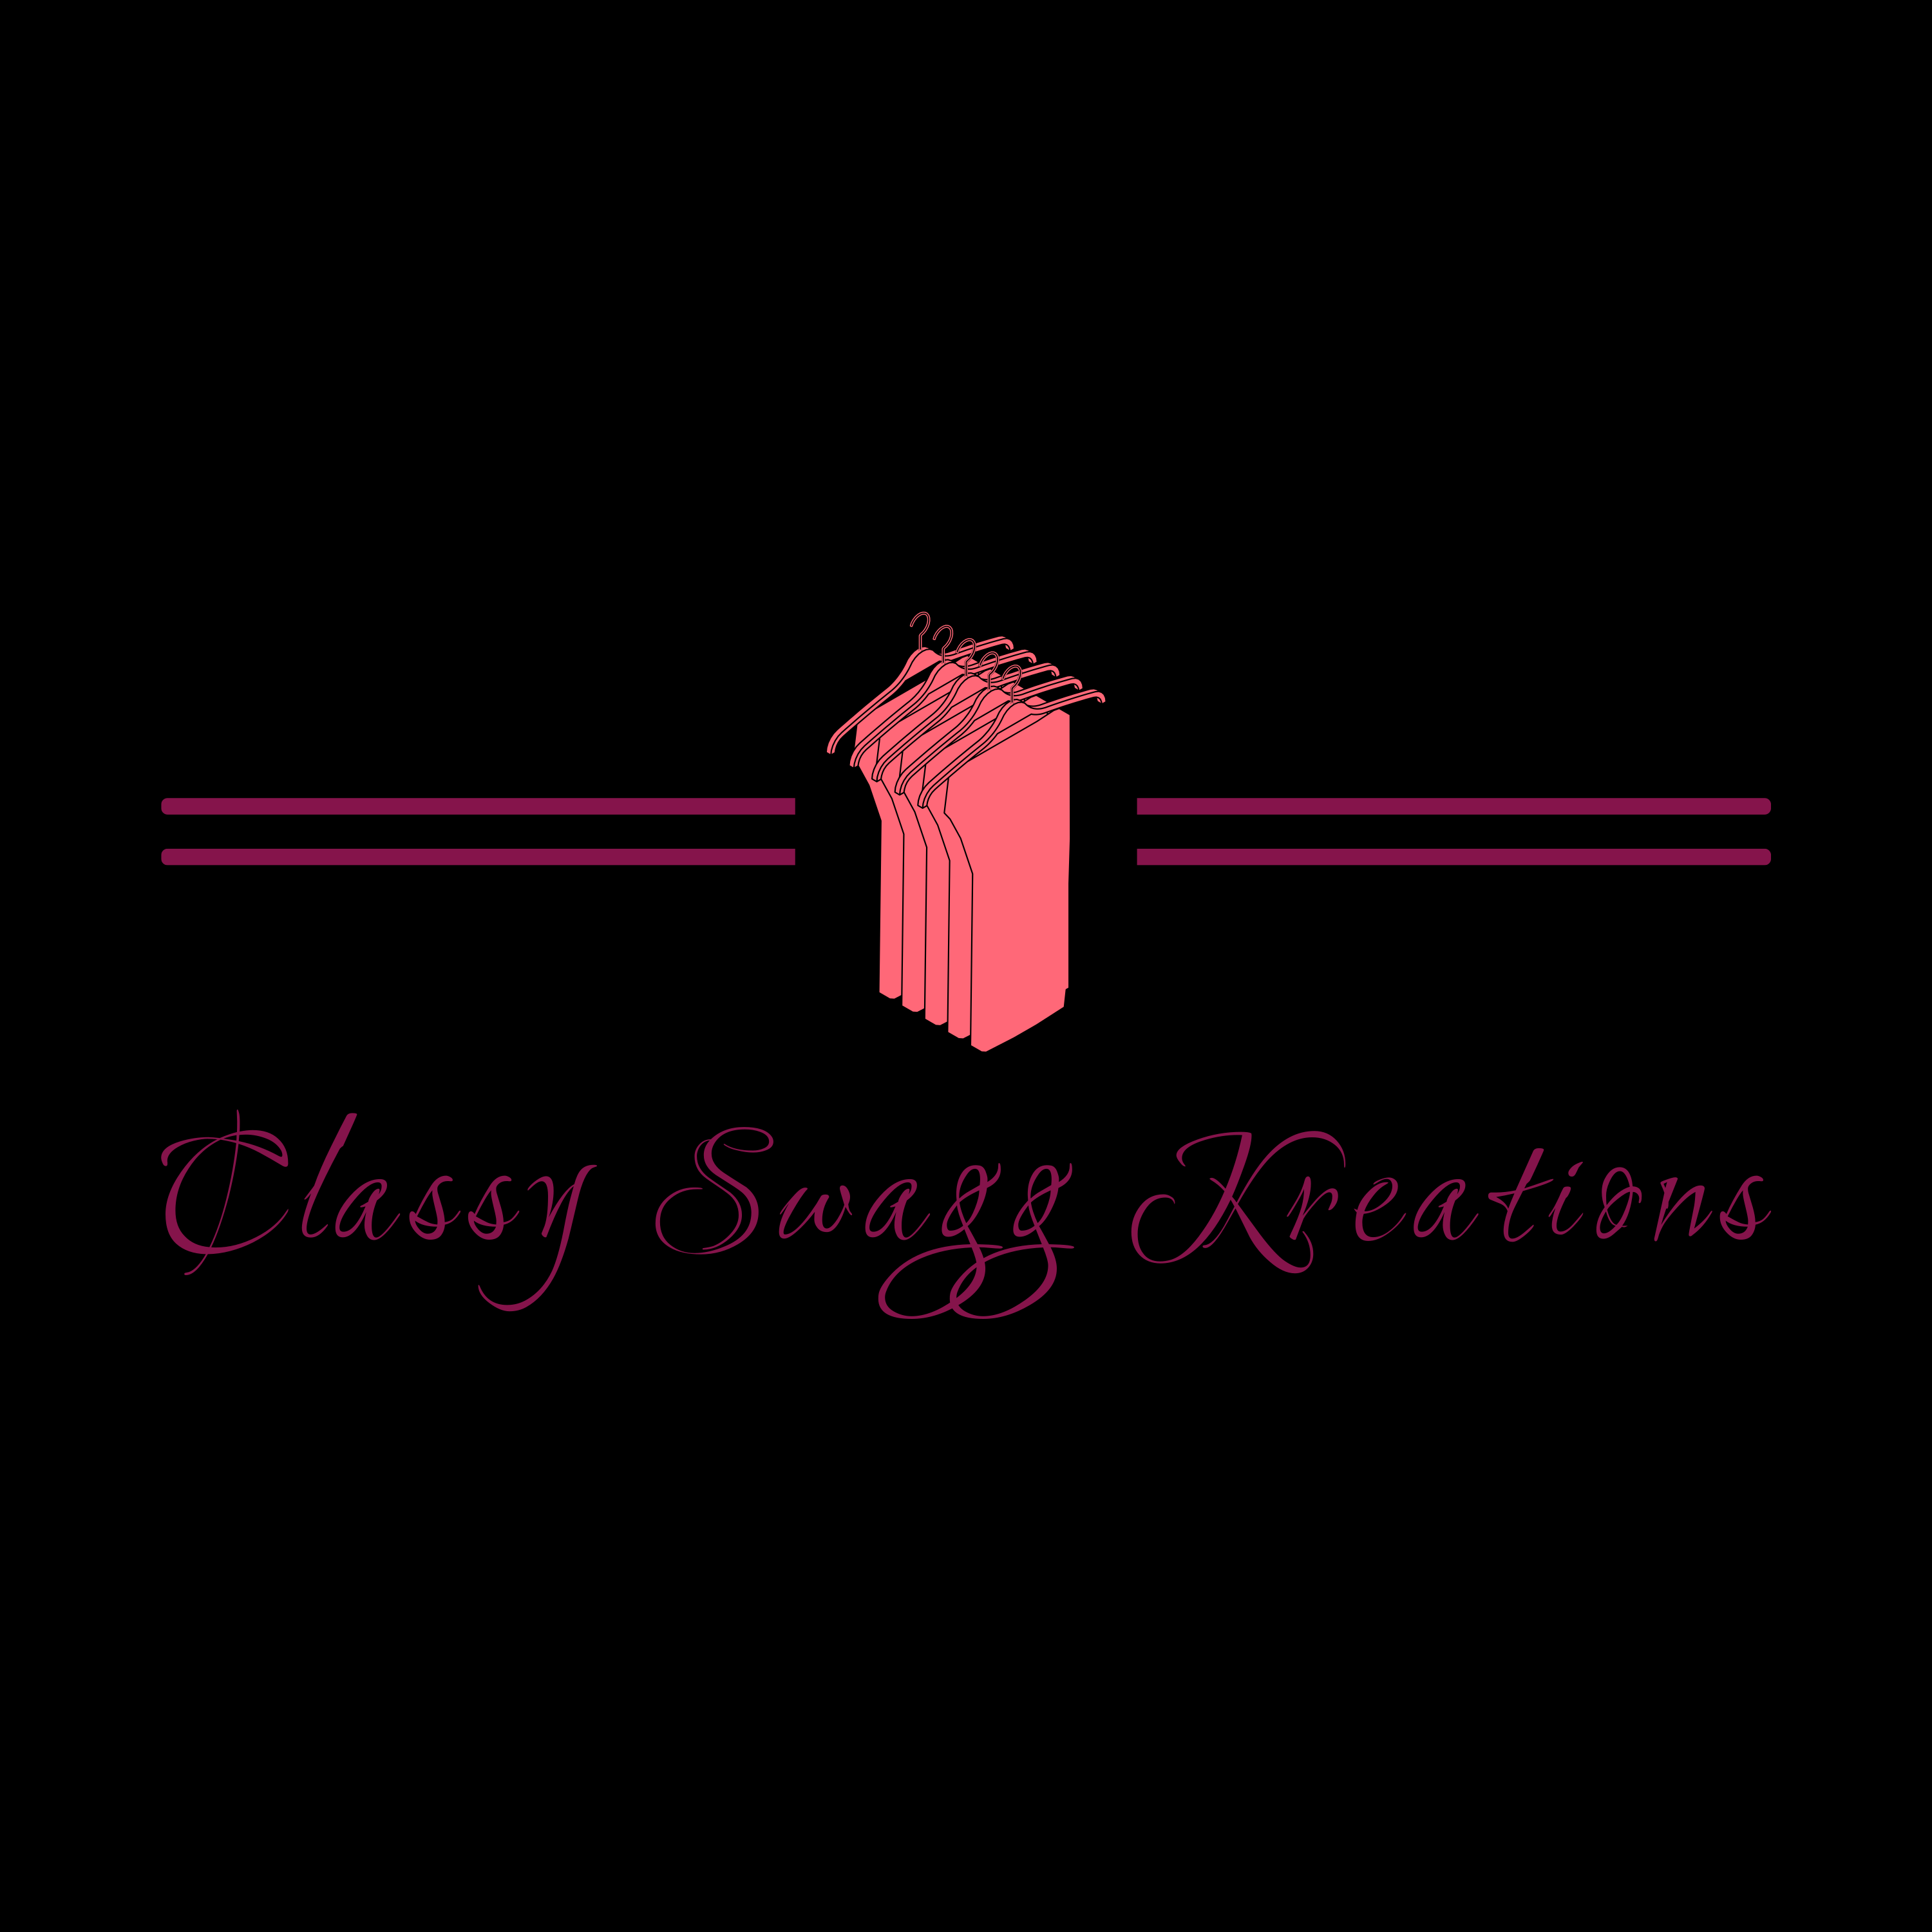 Classy Swagg Kreations